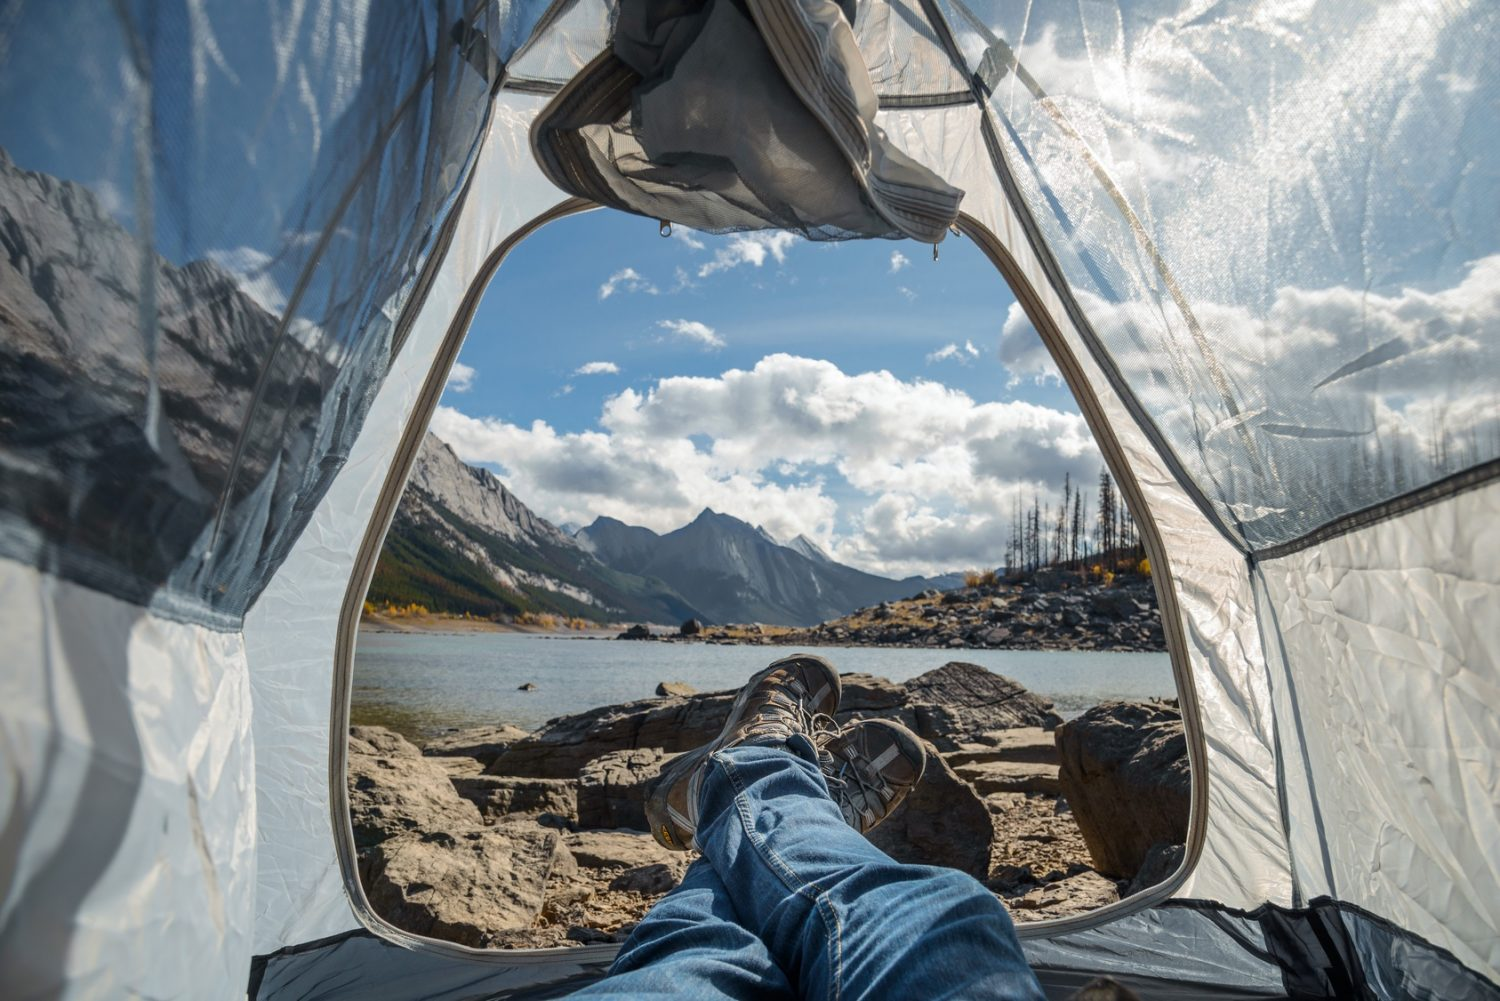 Sleeping al fresco travel trend